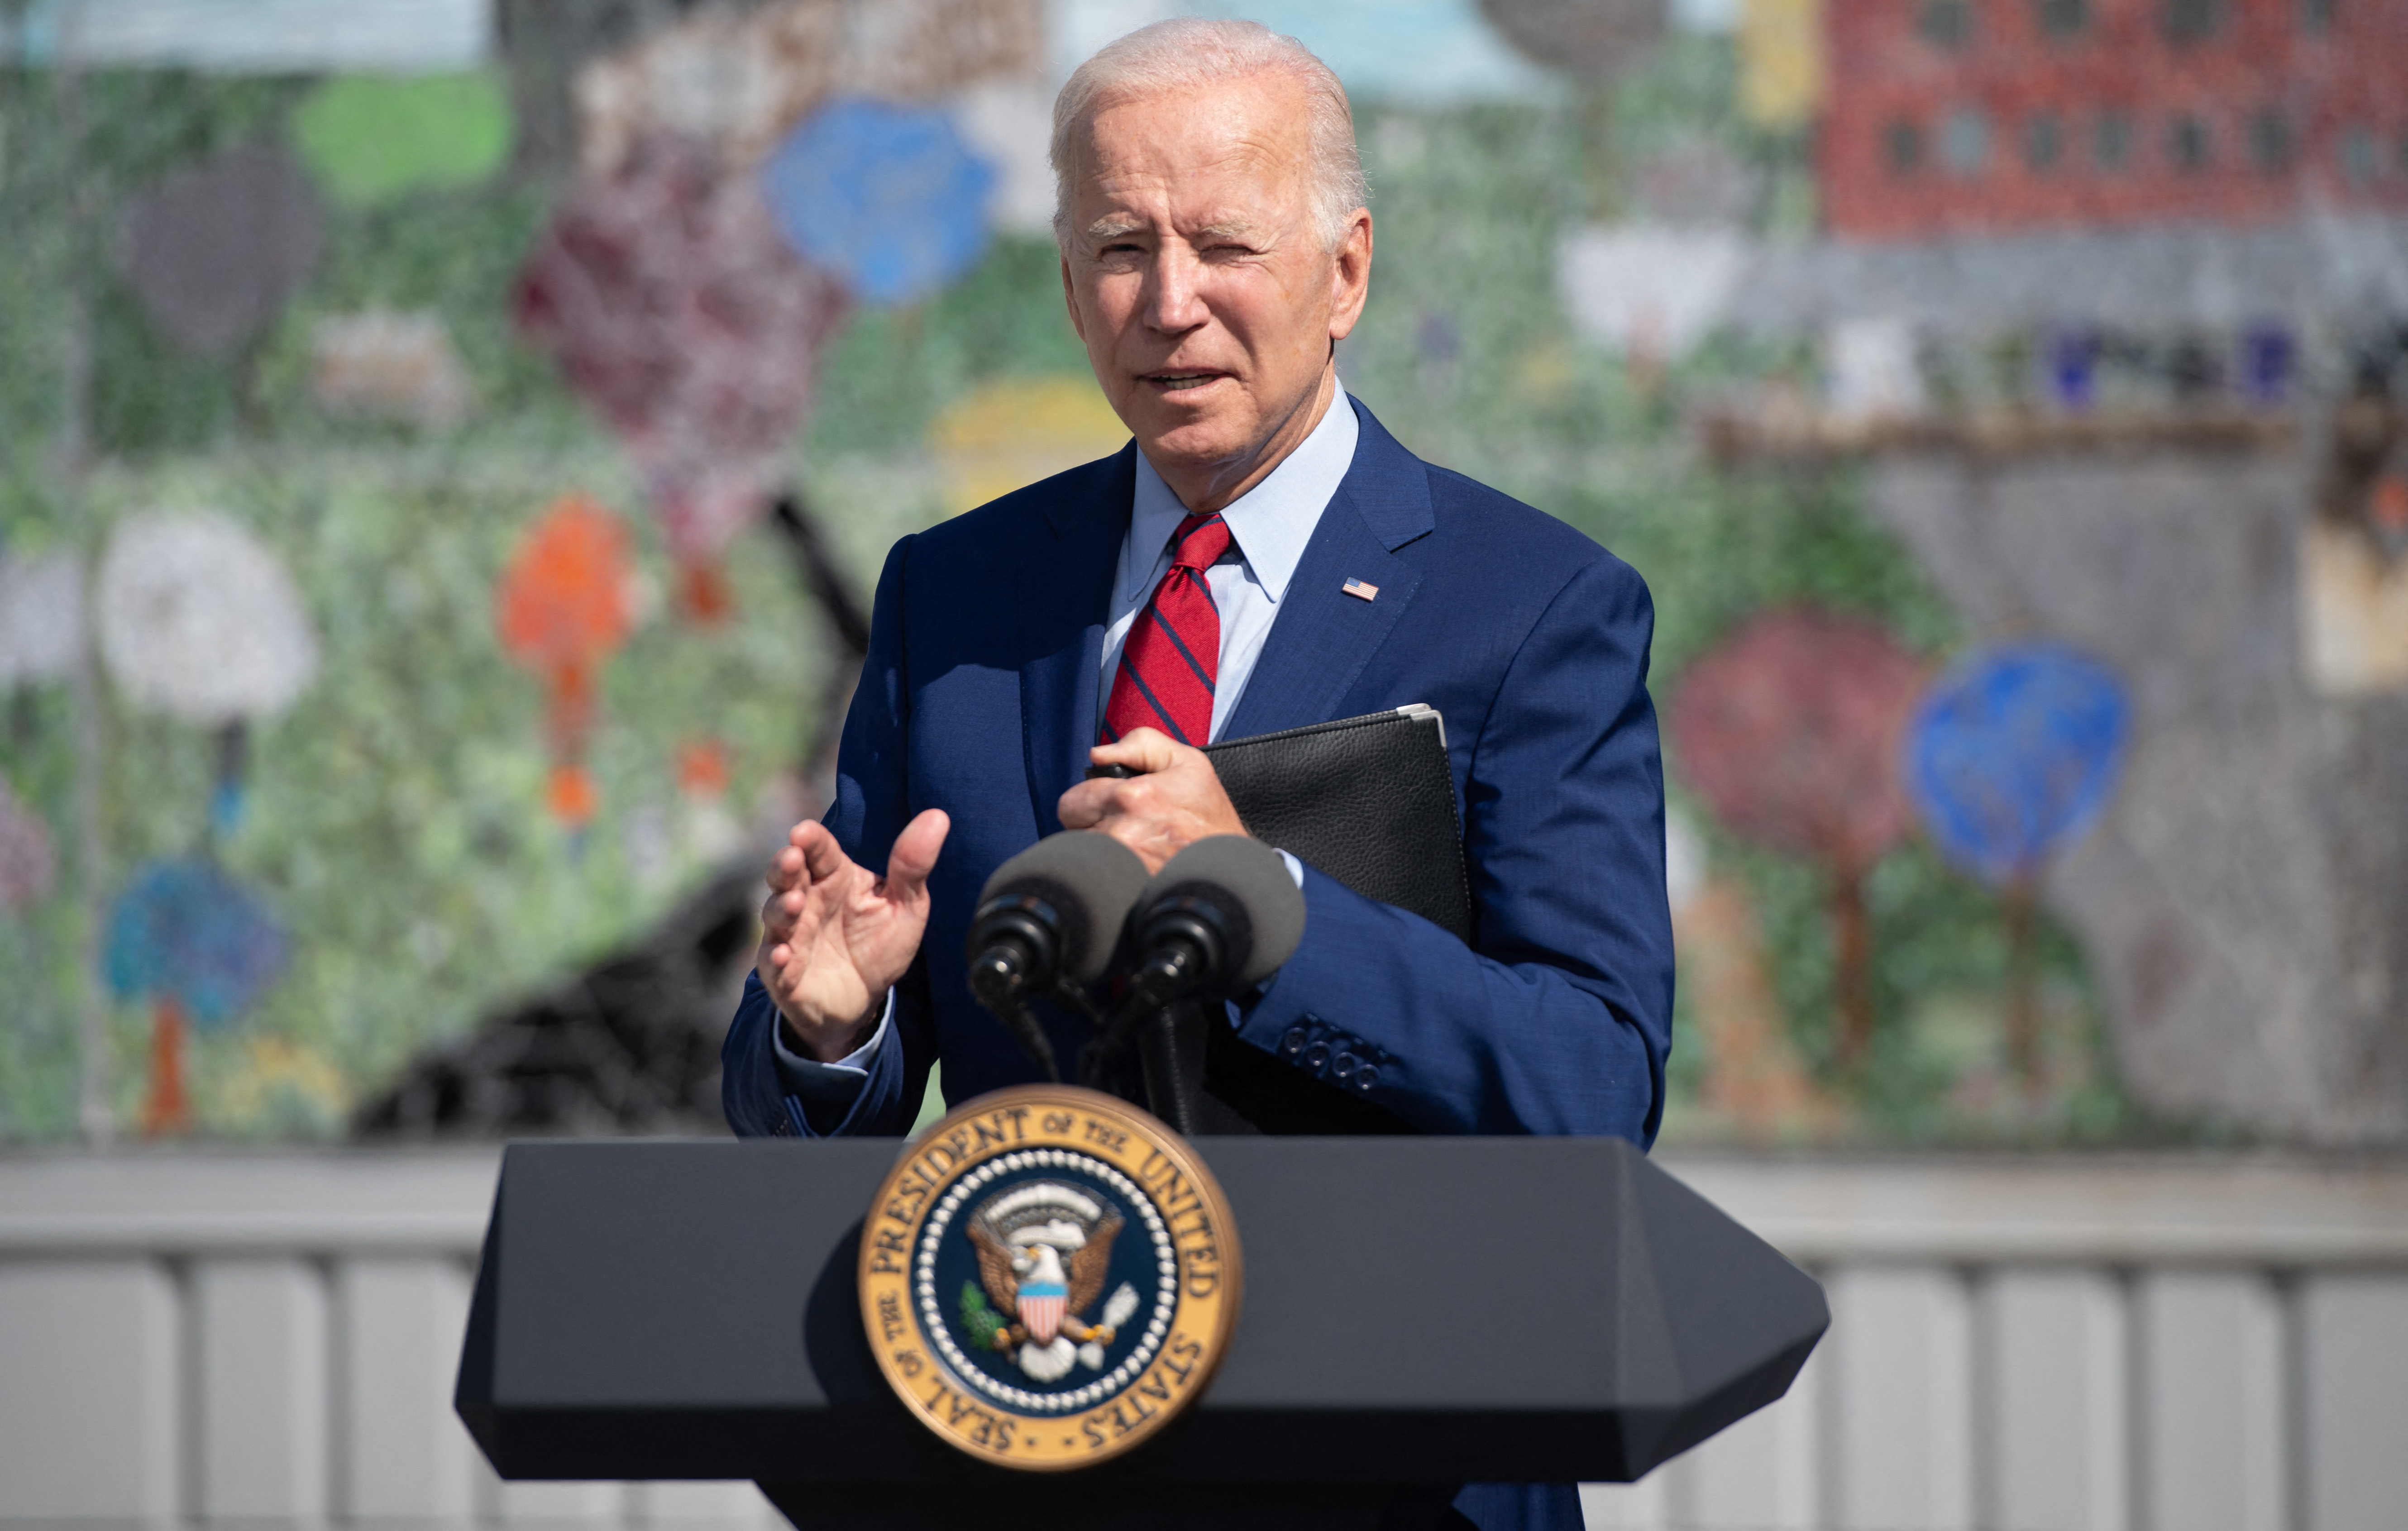 Joe Biden speaks about coronavirus protections in schools during a visit to Brookland Middle School in Washington, D.C. (Photo by SAUL LOEB/AFP via Getty Images)